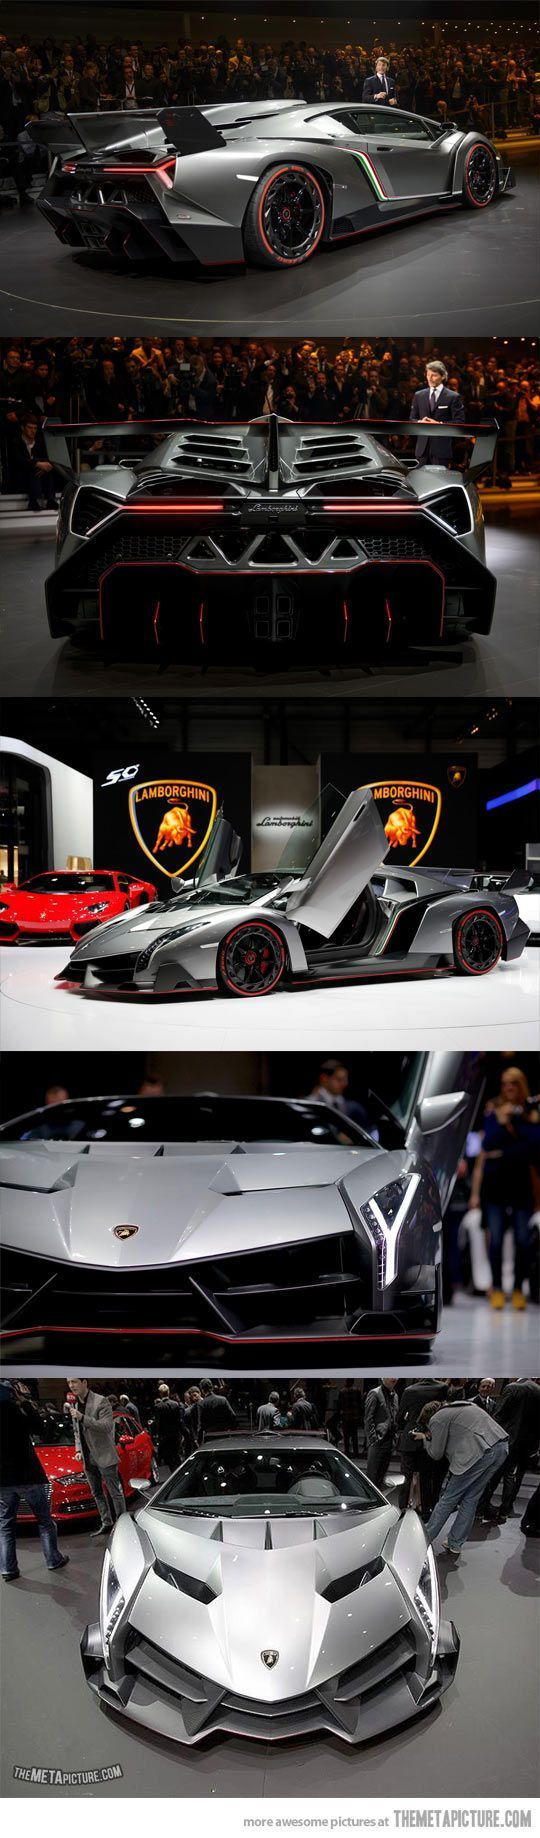 Lamborghini Veneno, only 3 were made in the world… #lamborghiniveneno